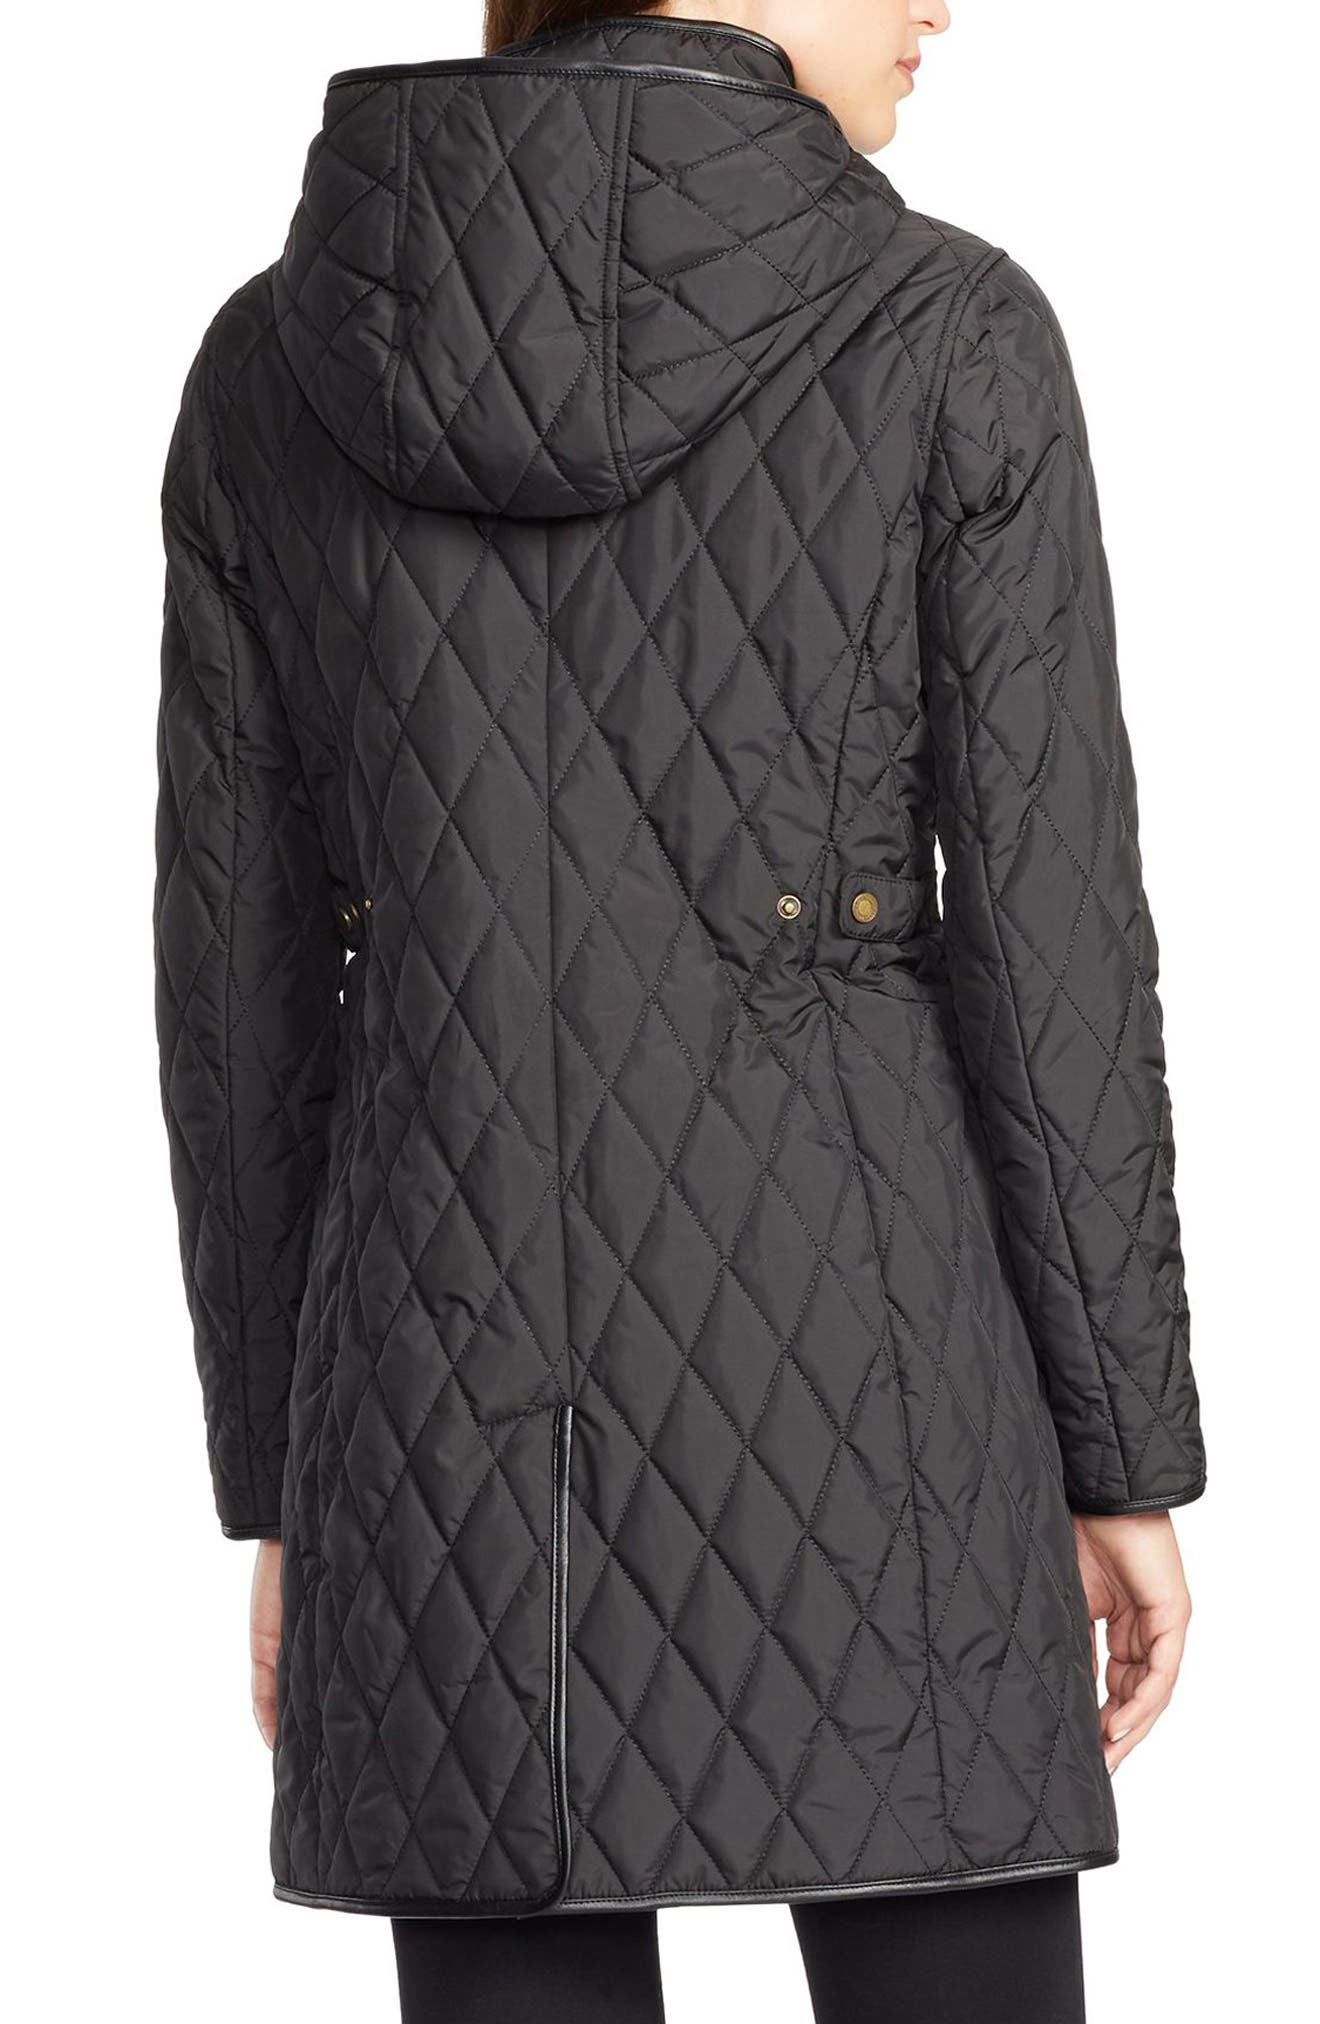 LAUREN RALPH LAUREN,                             Quilted Jacket,                             Alternate thumbnail 2, color,                             001